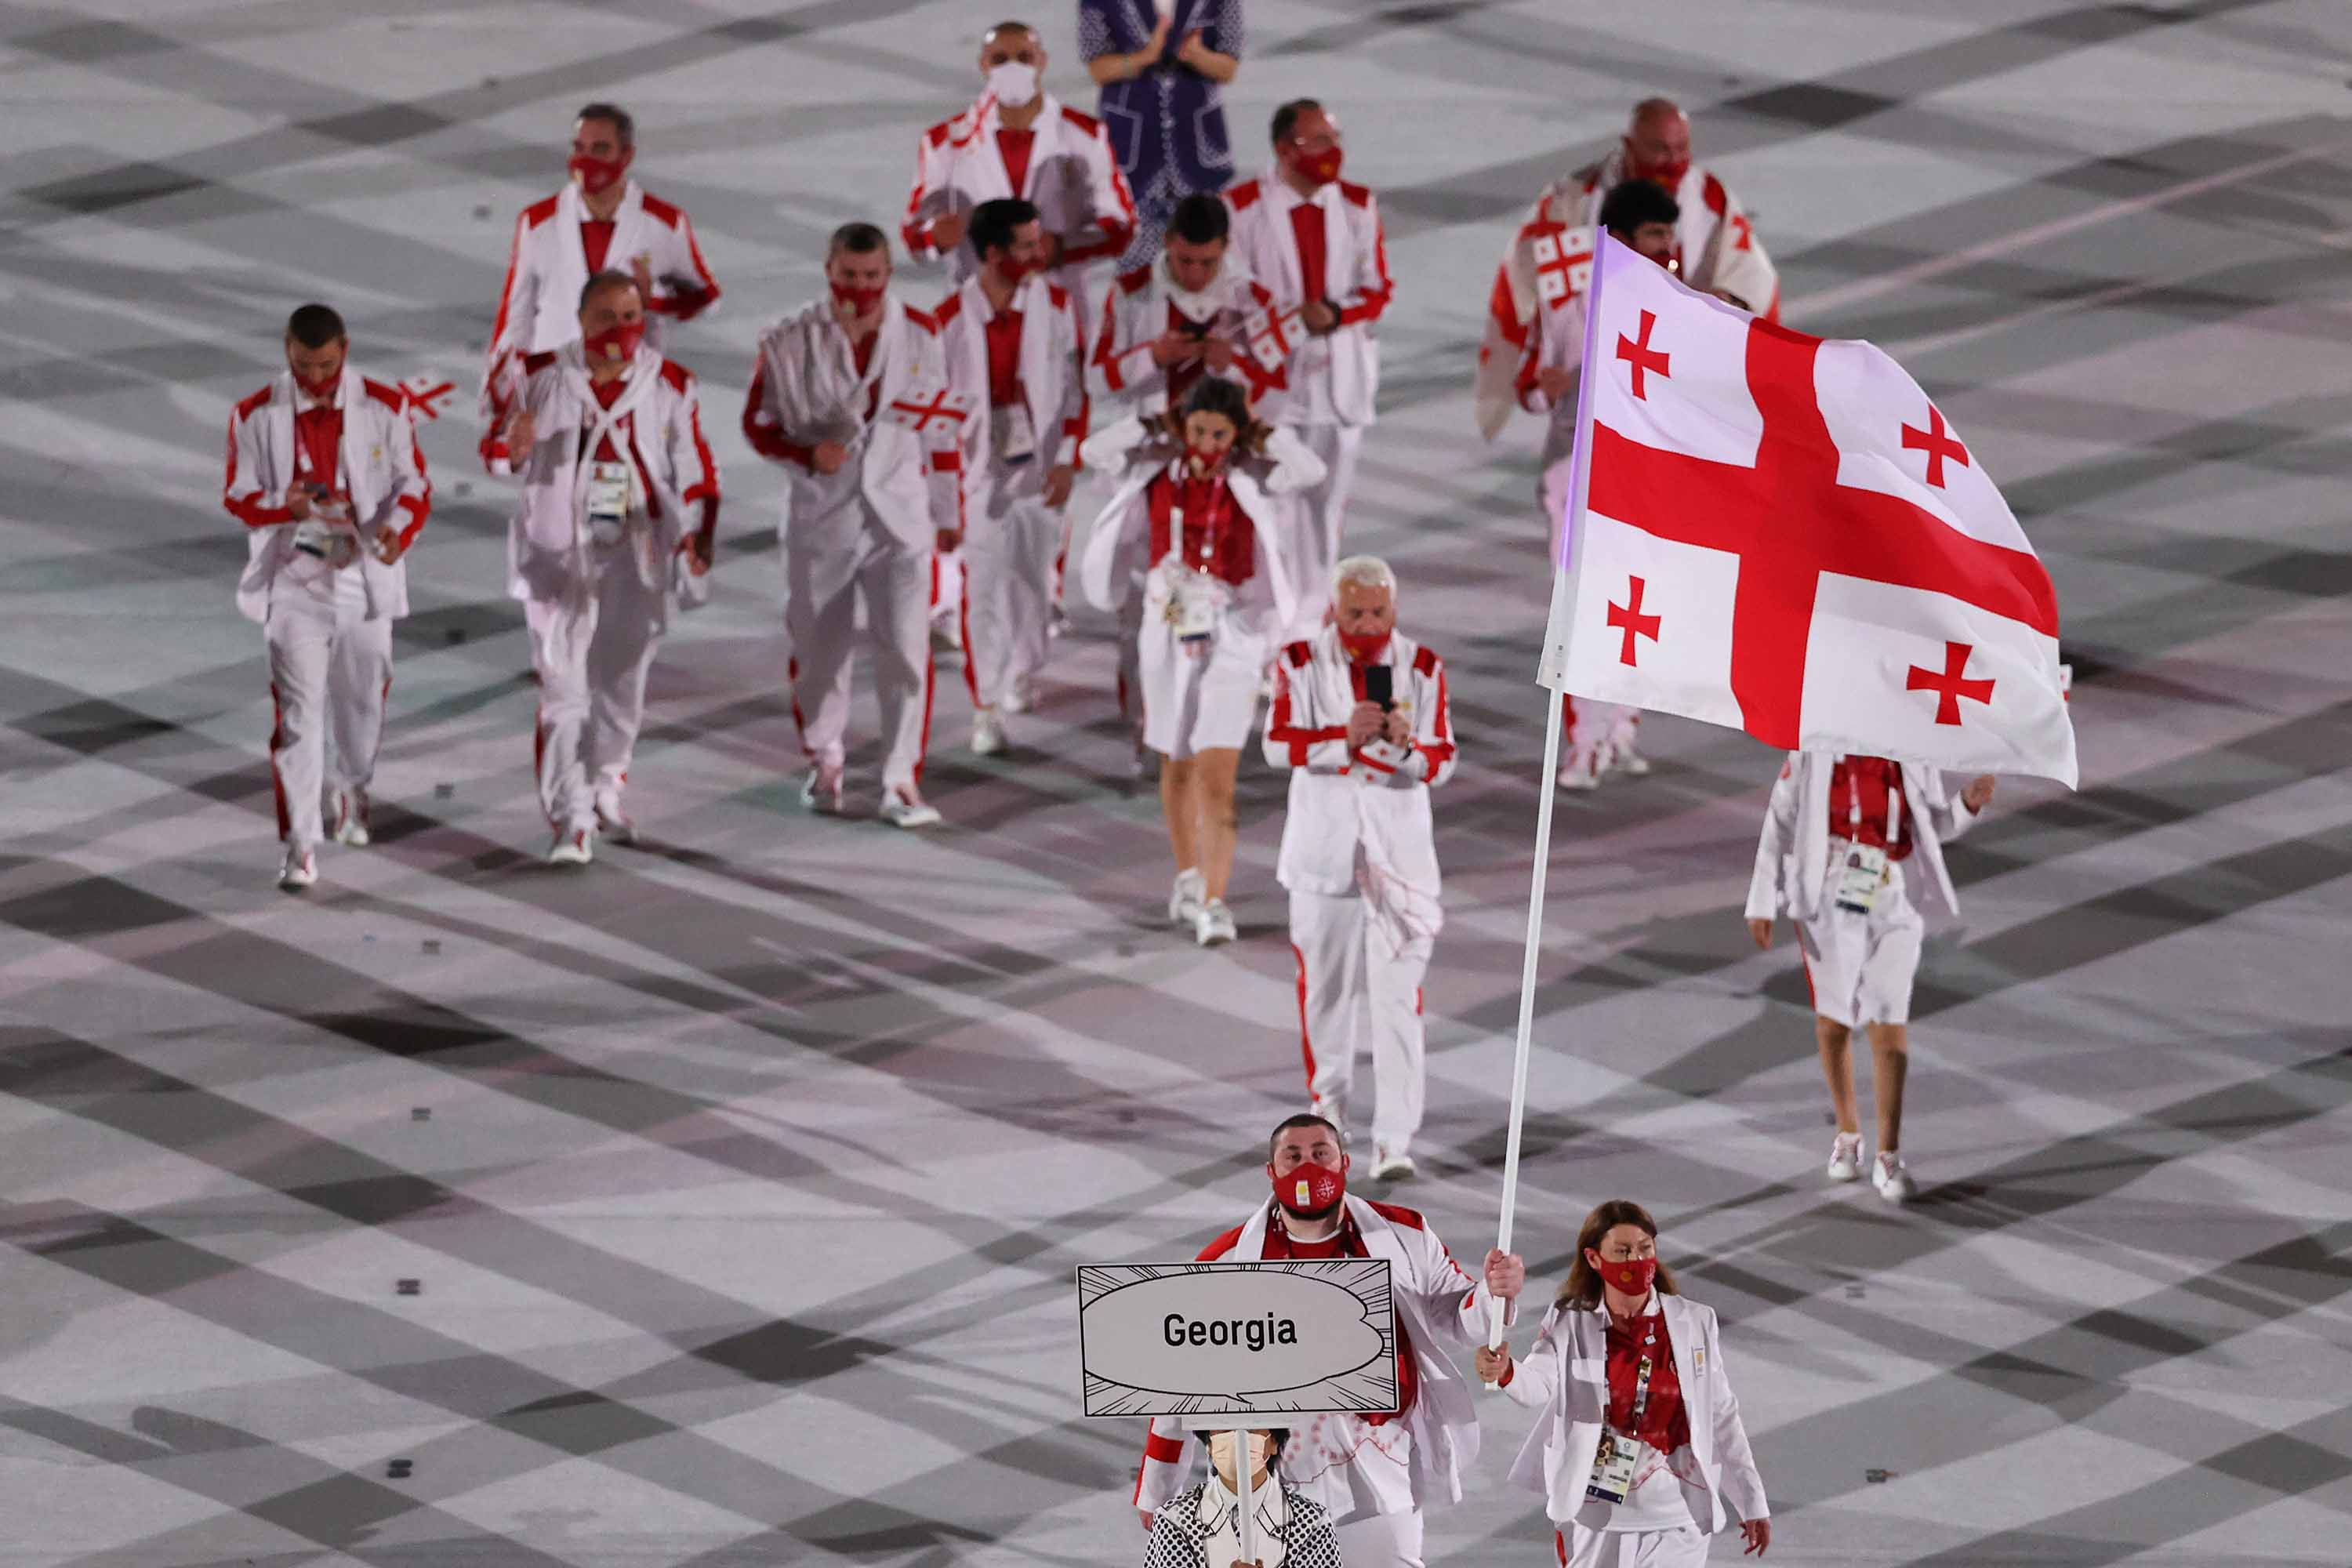 Flag bearers Nino Salukvadze, right, and Lasha Talakhadze of Team Georgia lead their team out during the Opening Ceremony of the Tokyo 2020 Olympic Games on July 23.